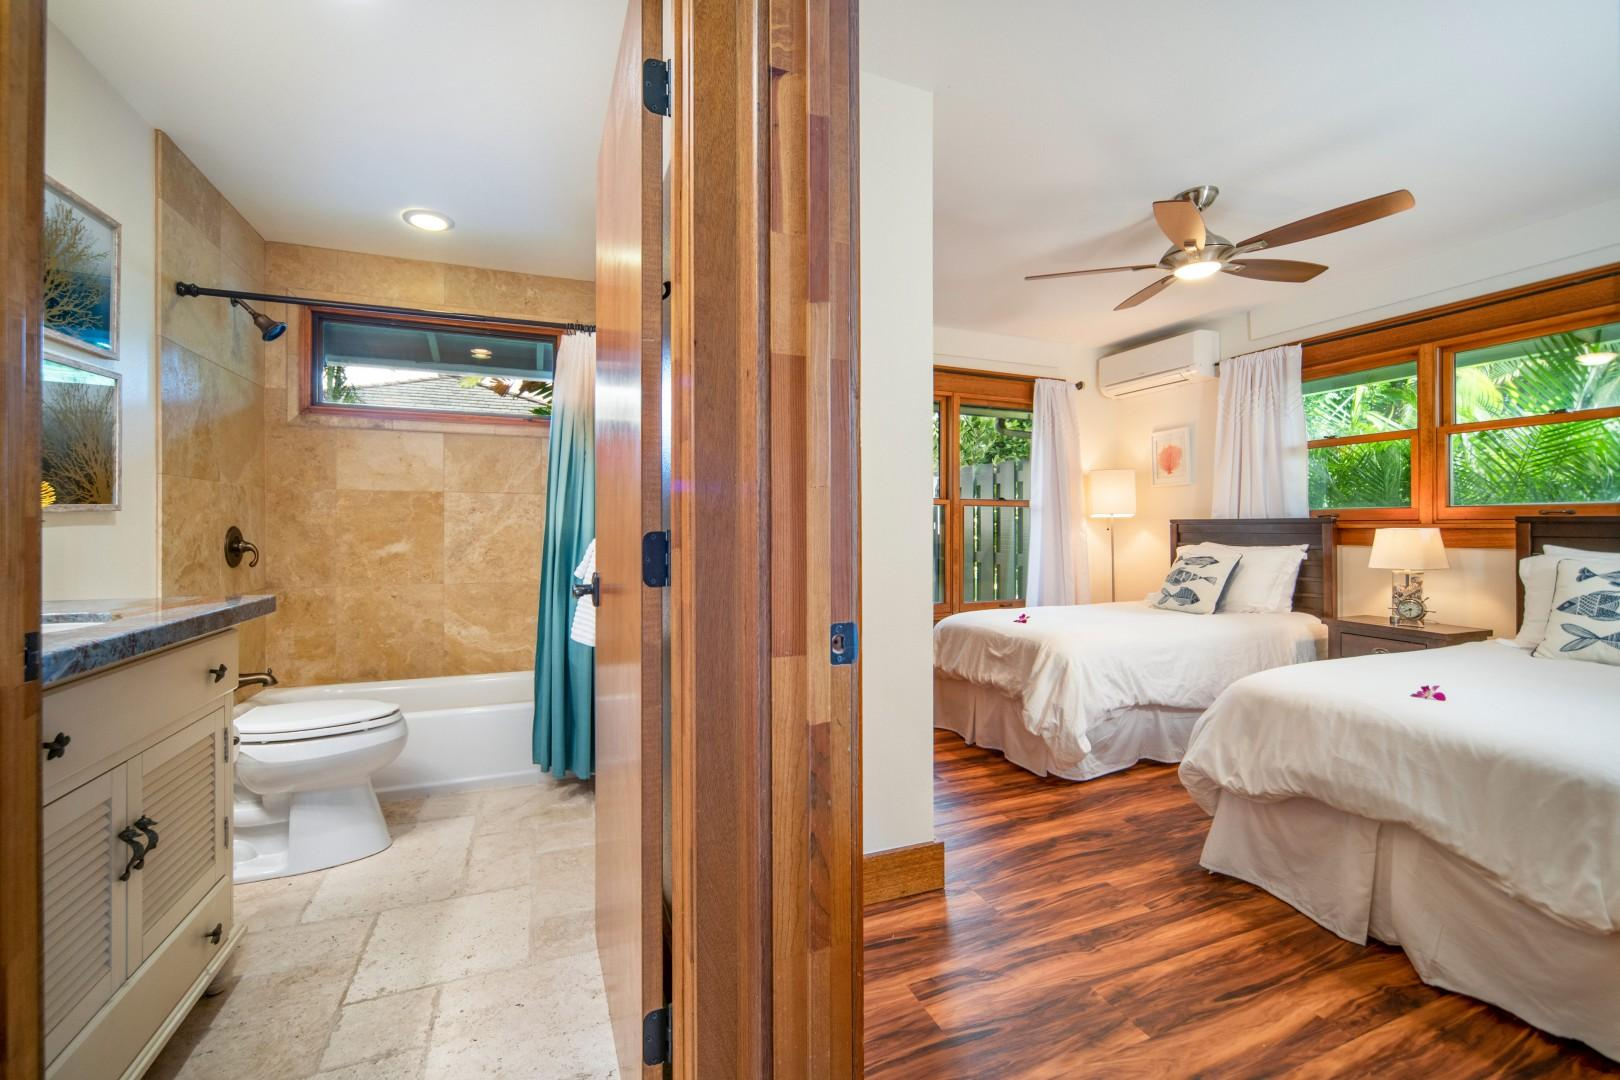 A view from the living room into the twin bedroom and hallway bathroom.